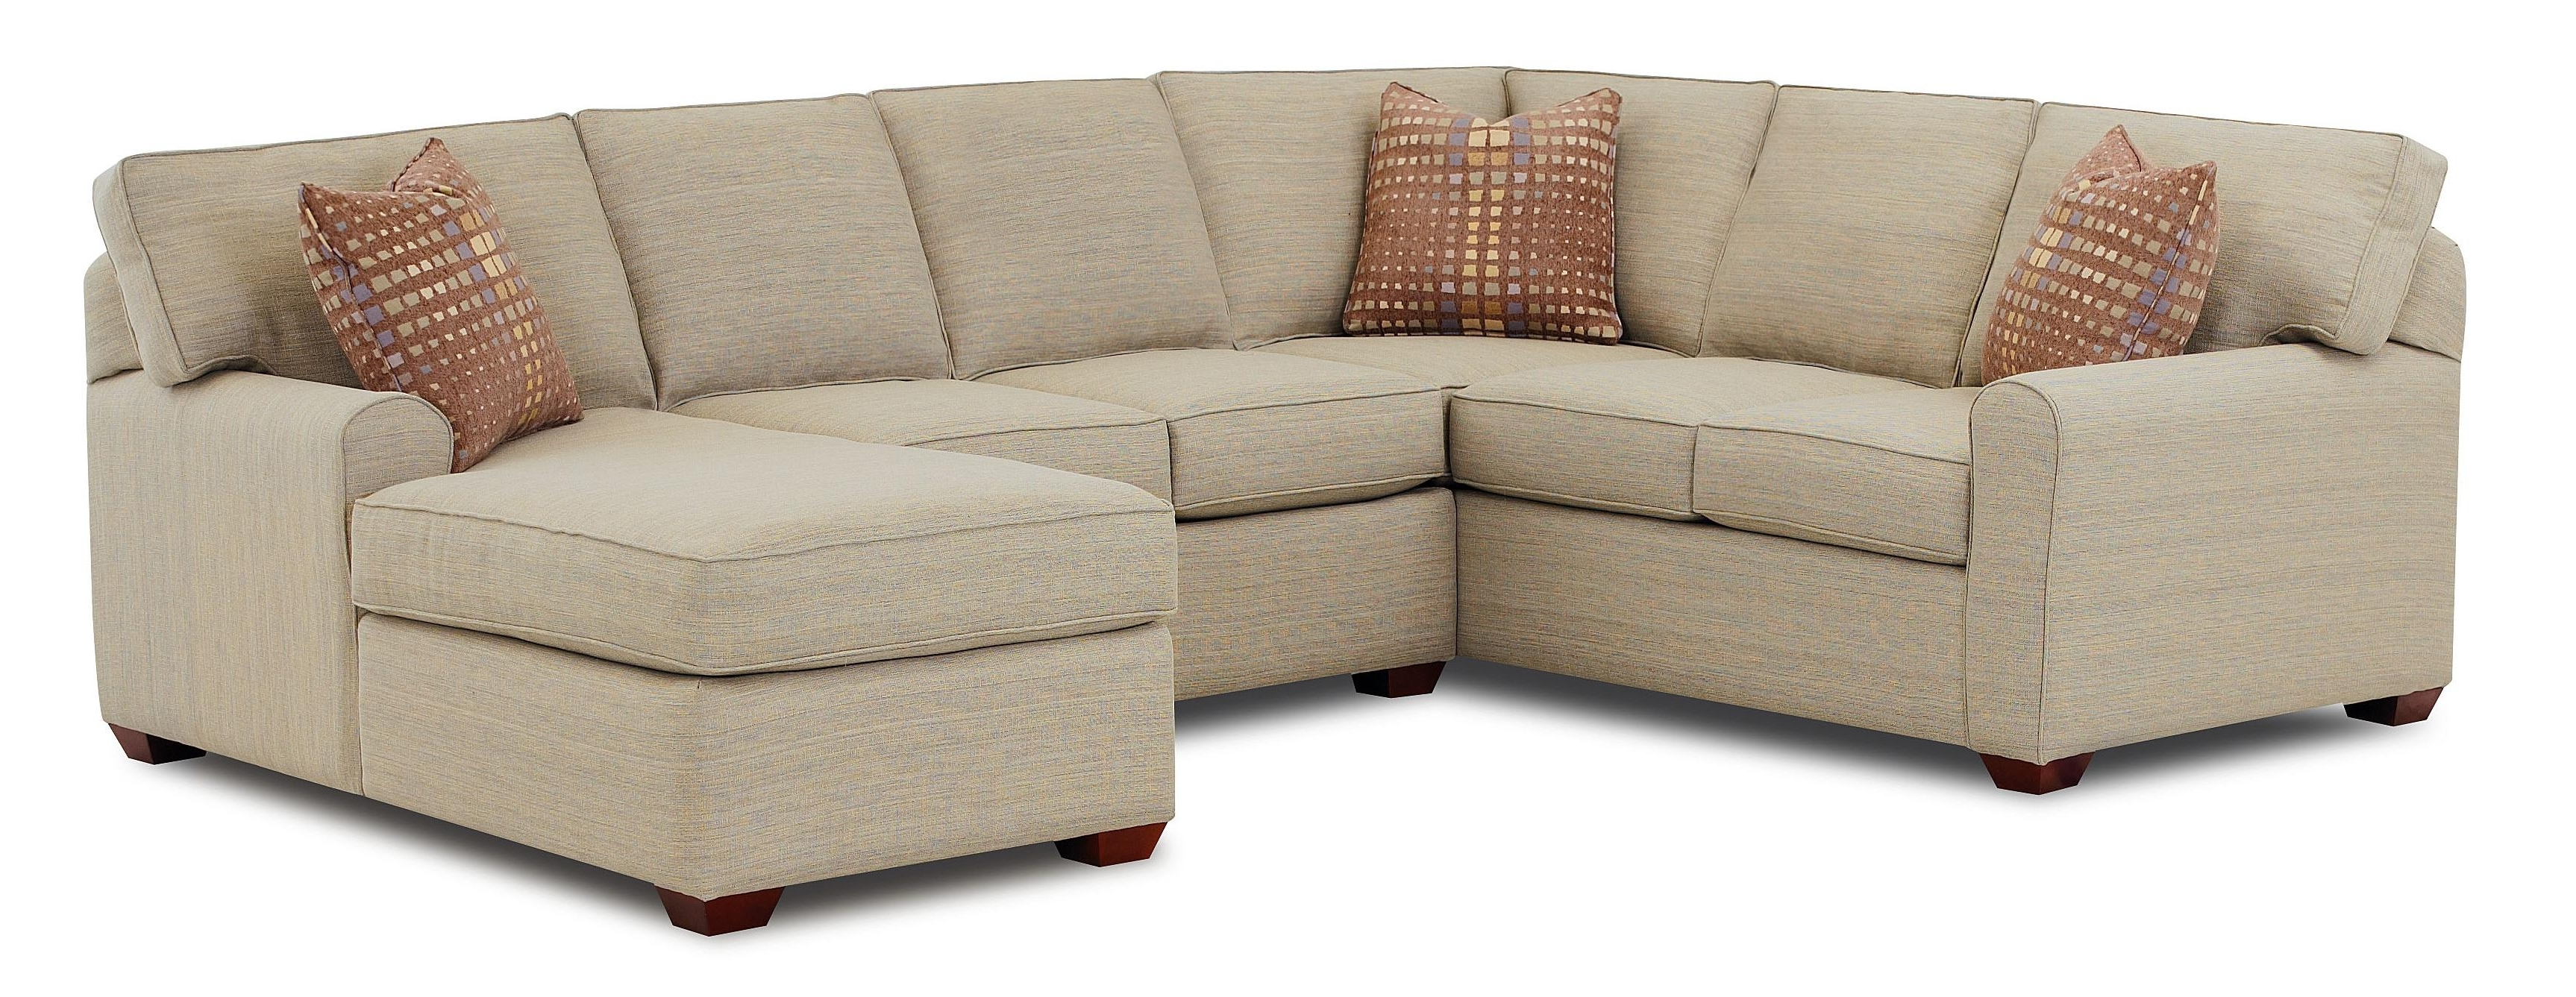 Cheap Chaise Sofas Within Most Recent Sofas : Leather Chaise Sofa Microfiber Sectional Sofa Large (View 4 of 15)